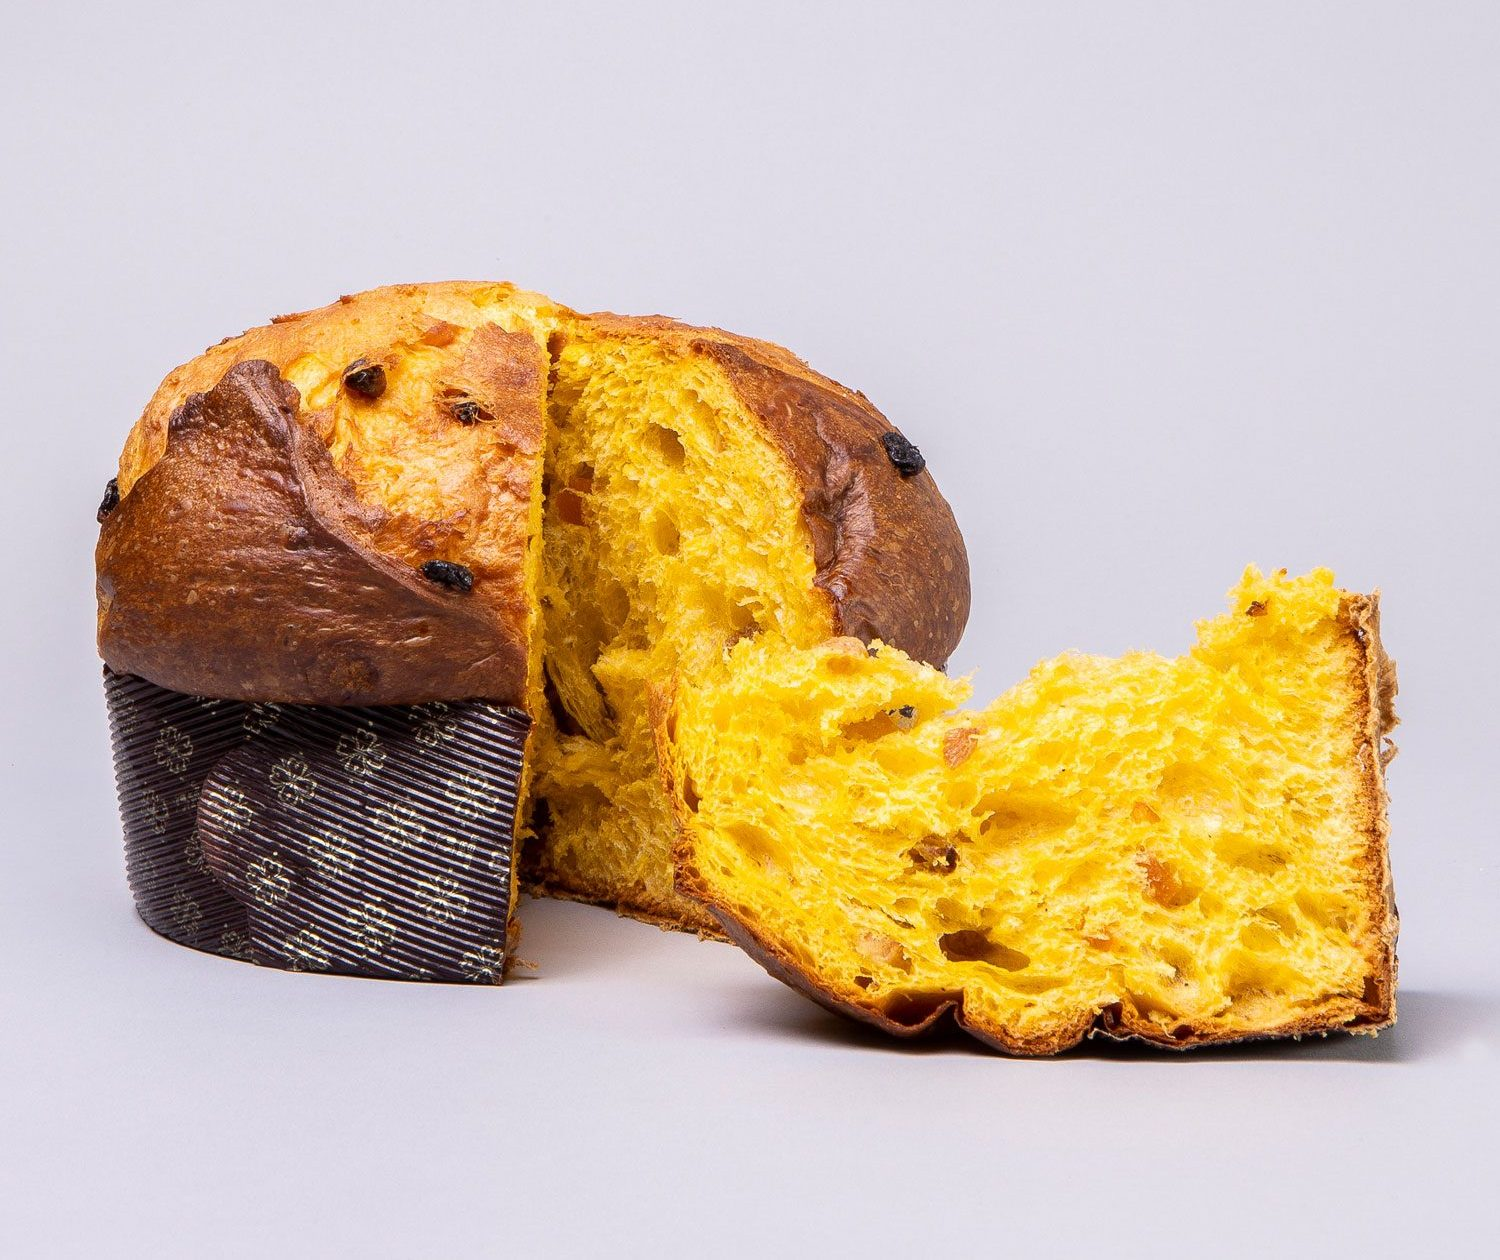 A loaf of panettone with a clean slice resting next to it.